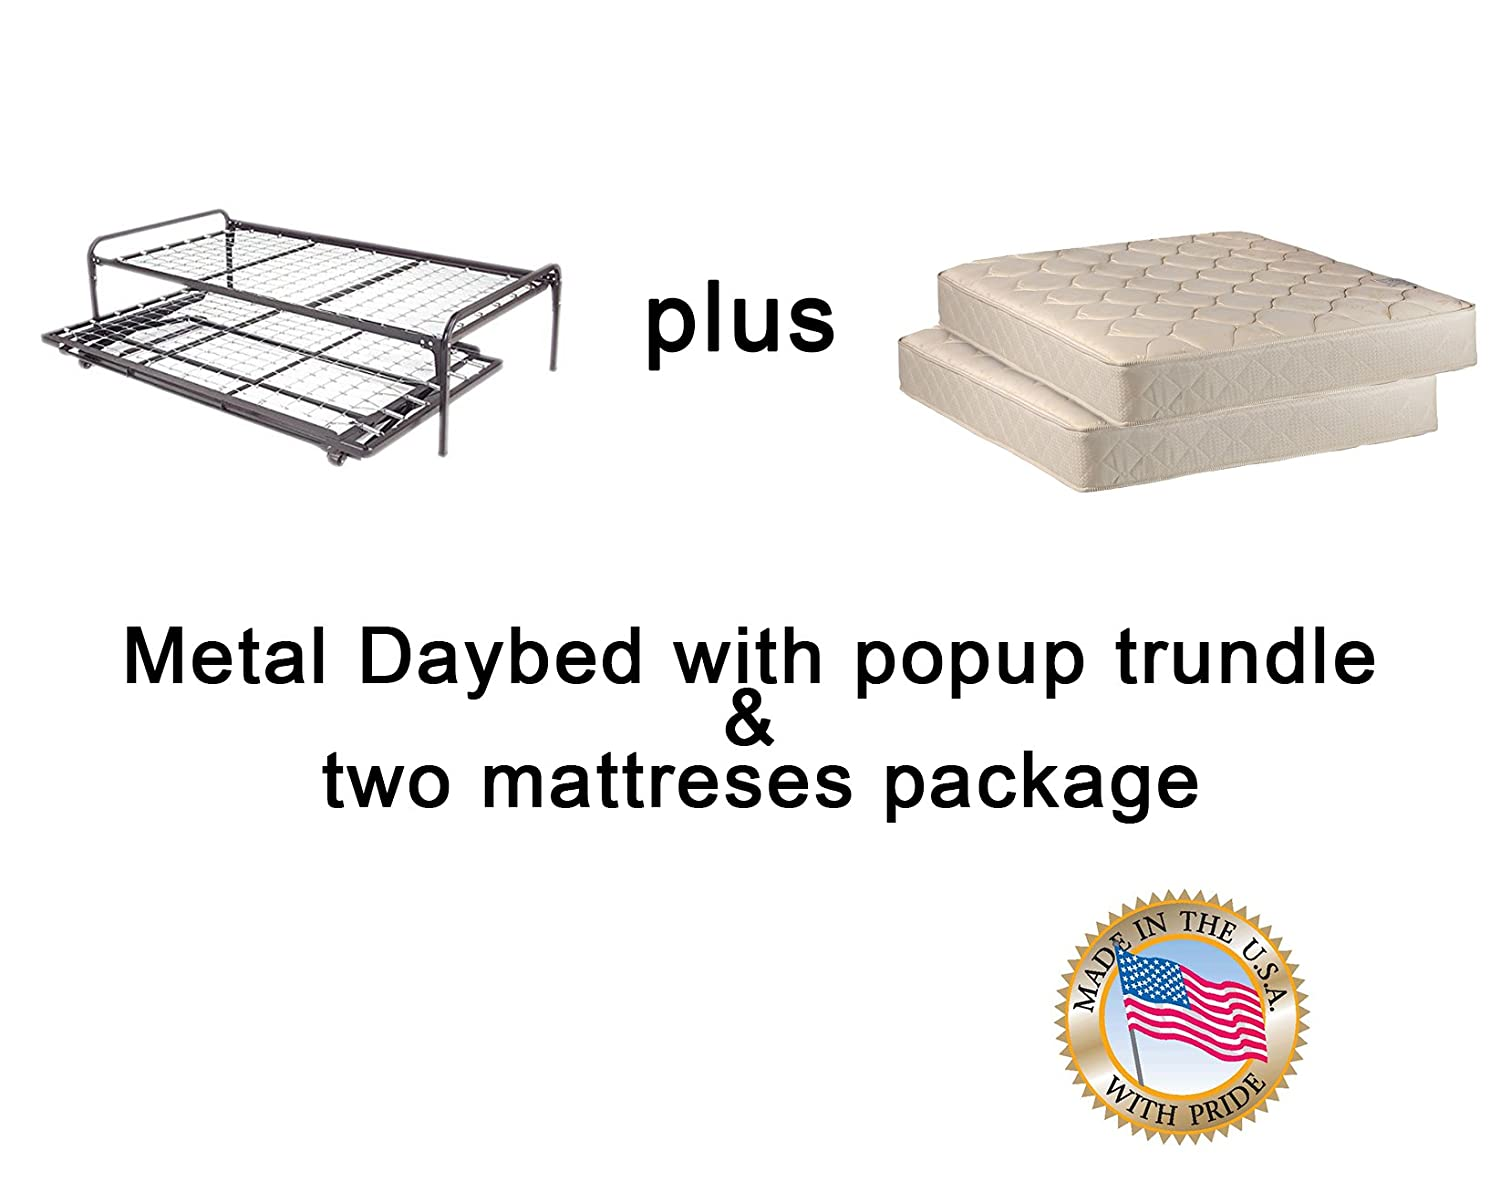 hot sale online b9e20 25717 Dream Solutions Twin Size Metal Day Bed (Daybed) Frame & Pop up Trundle  with Great Firm Mattresses Included Package Deal!